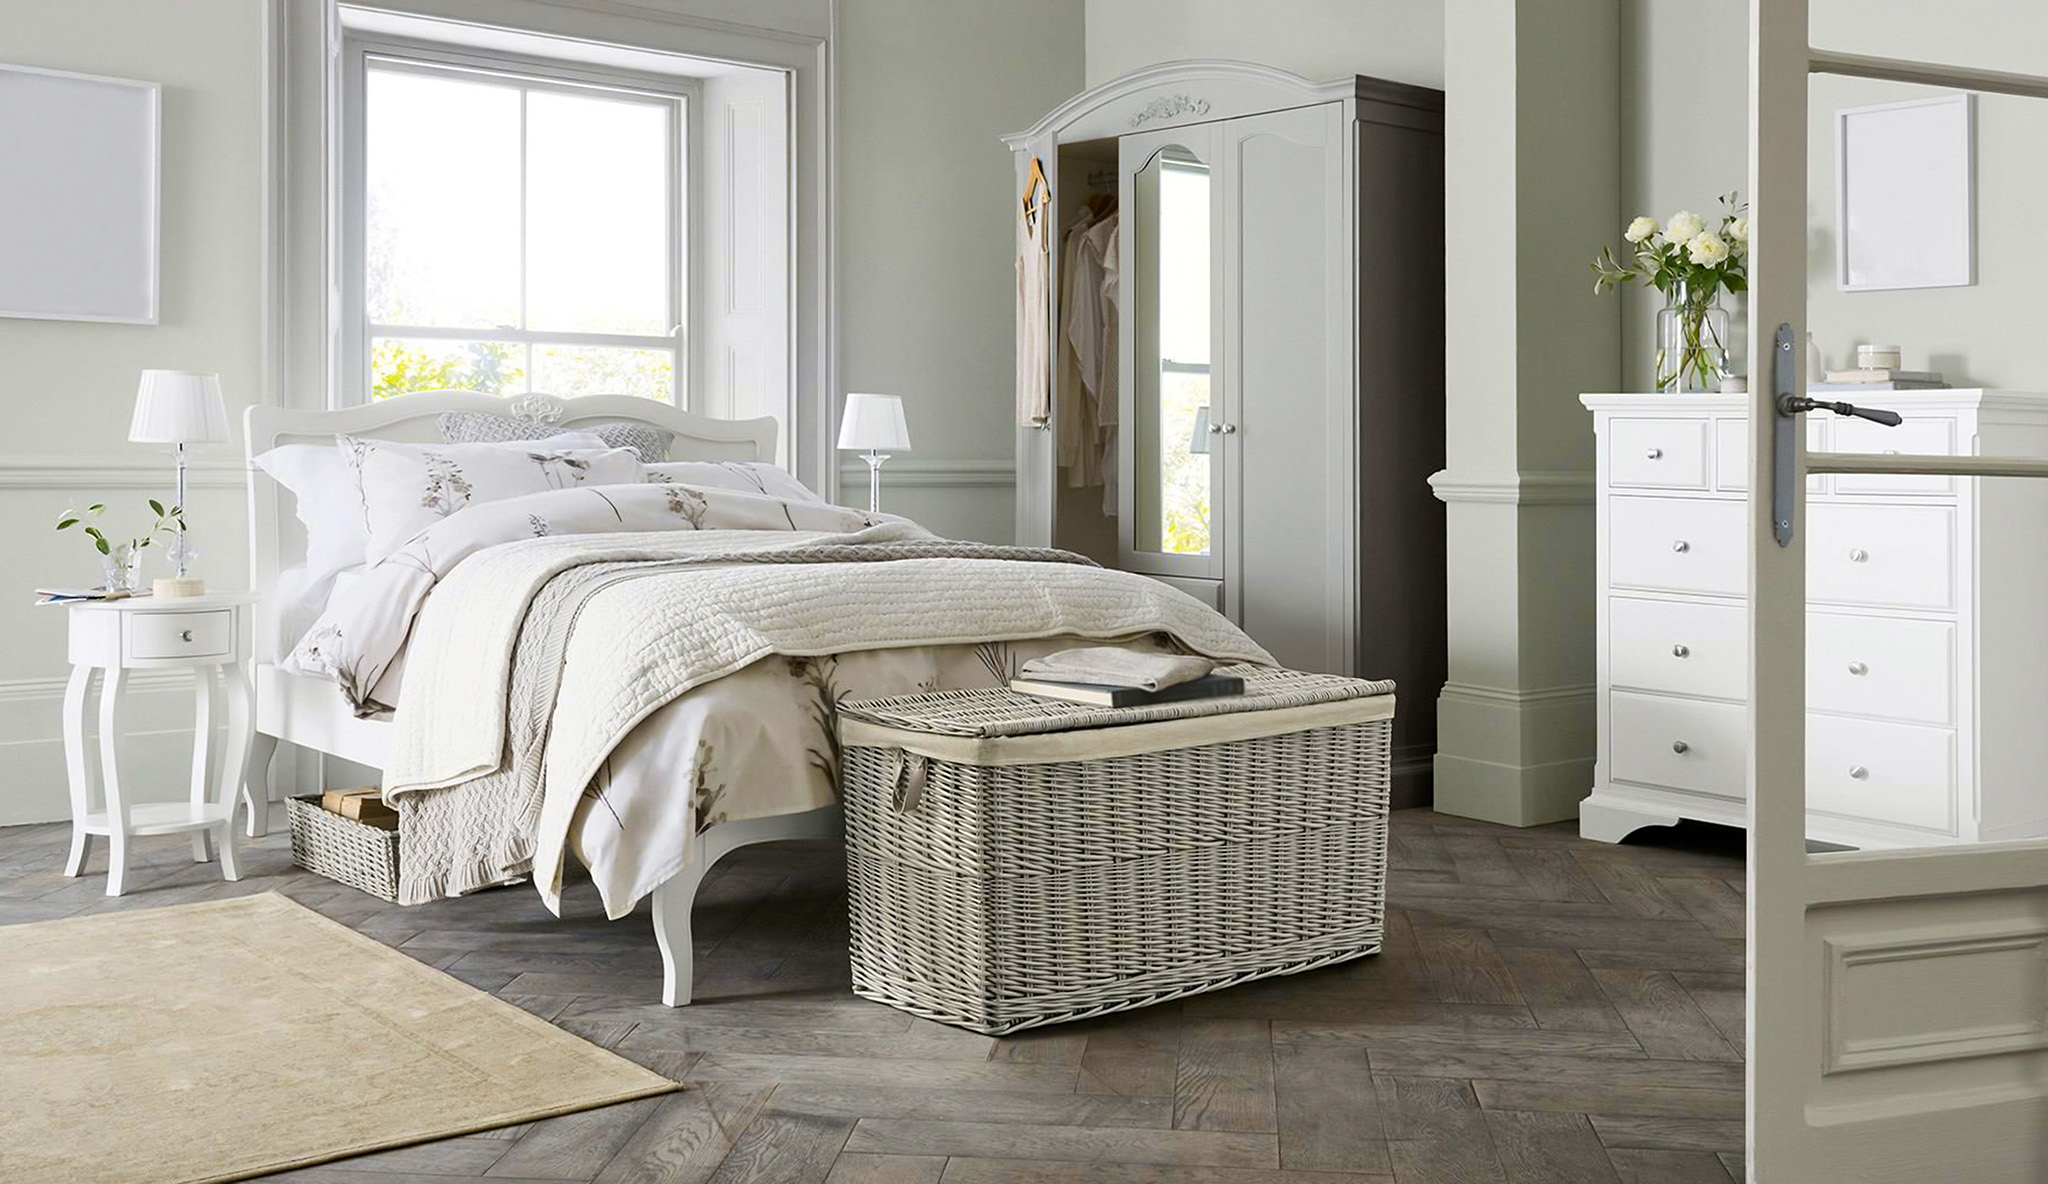 Bedroom accessories, wardrobe baskets, grey wardrobe, bedroom ideas for women